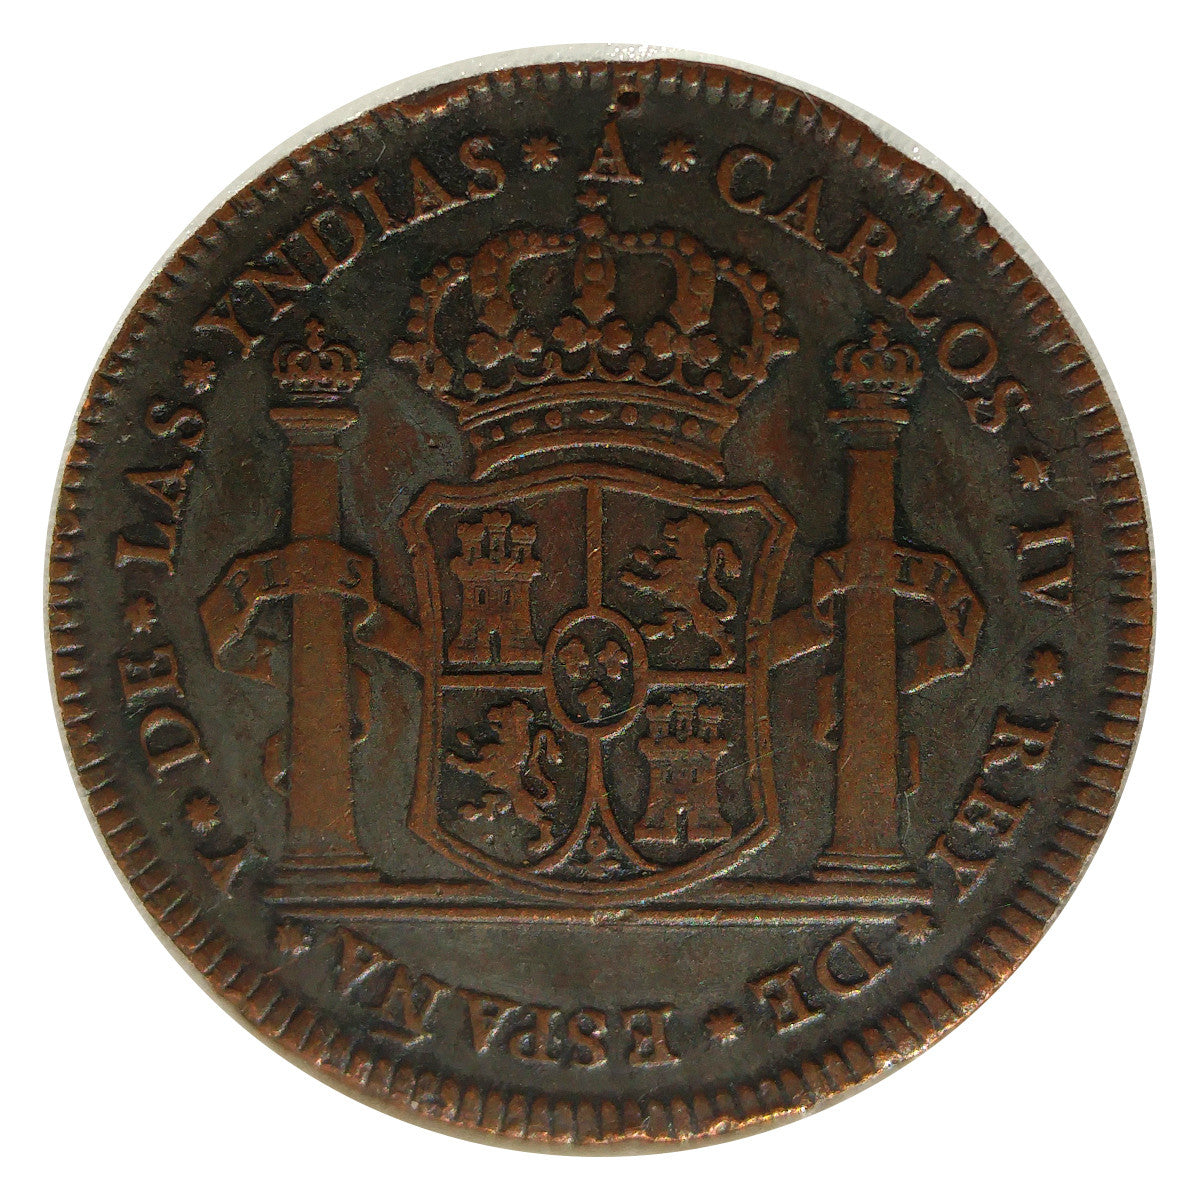 8 Reales Copper Pattern Coin 1789